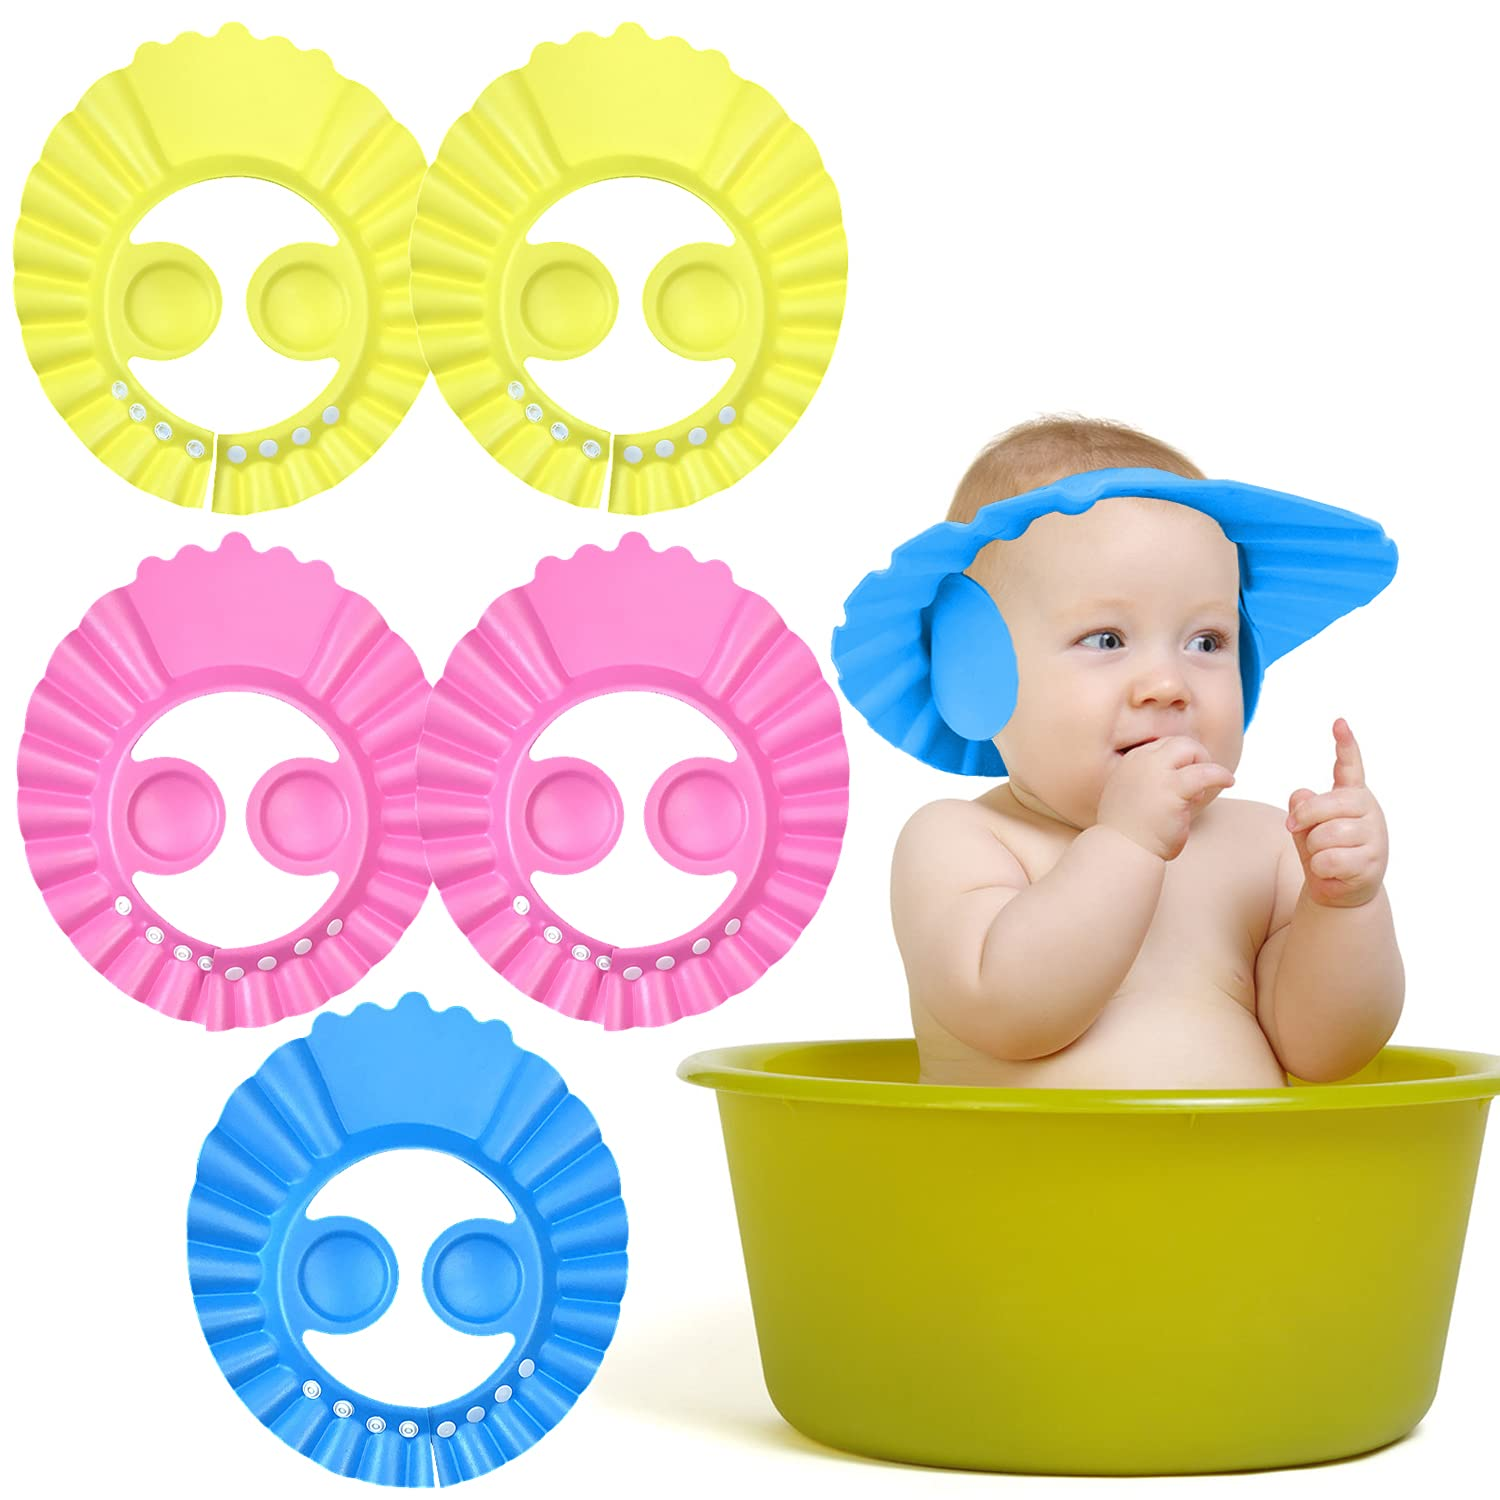 NEPAK 6PCS 3 Color Adjustable Bath Shampoo Cap,Baby Shower Cap,Adjustable Children's Sun Hat,Children's Shampoo Shield Hat with Ear Protection,Used for Baby Bath and Shampoo Safety